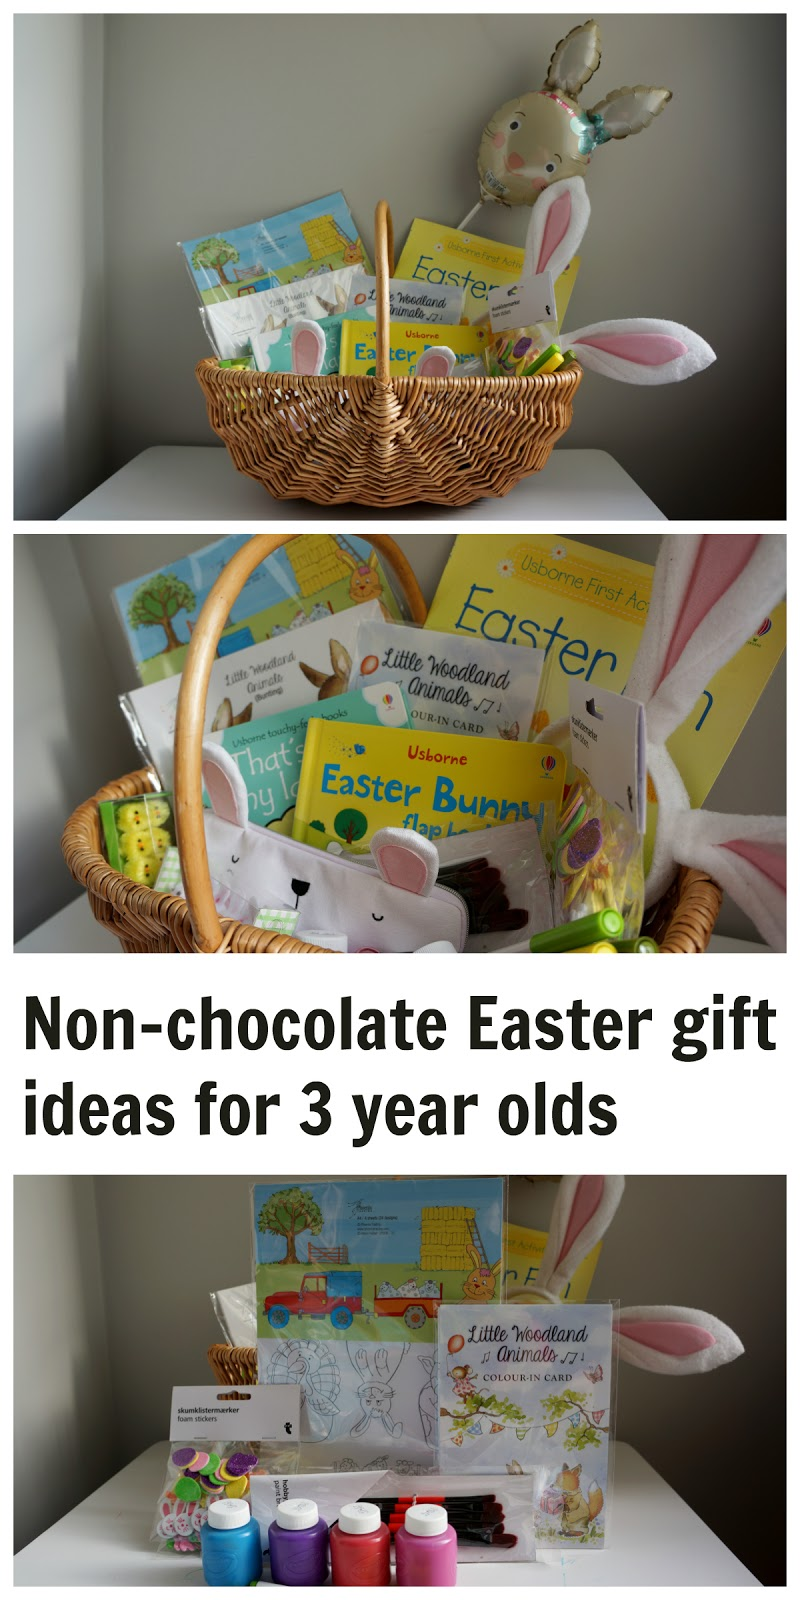 A non-chocolate Easter basket - Easter gift ideas for 3 year olds (also suitable for toddlers and pre-schoolers)